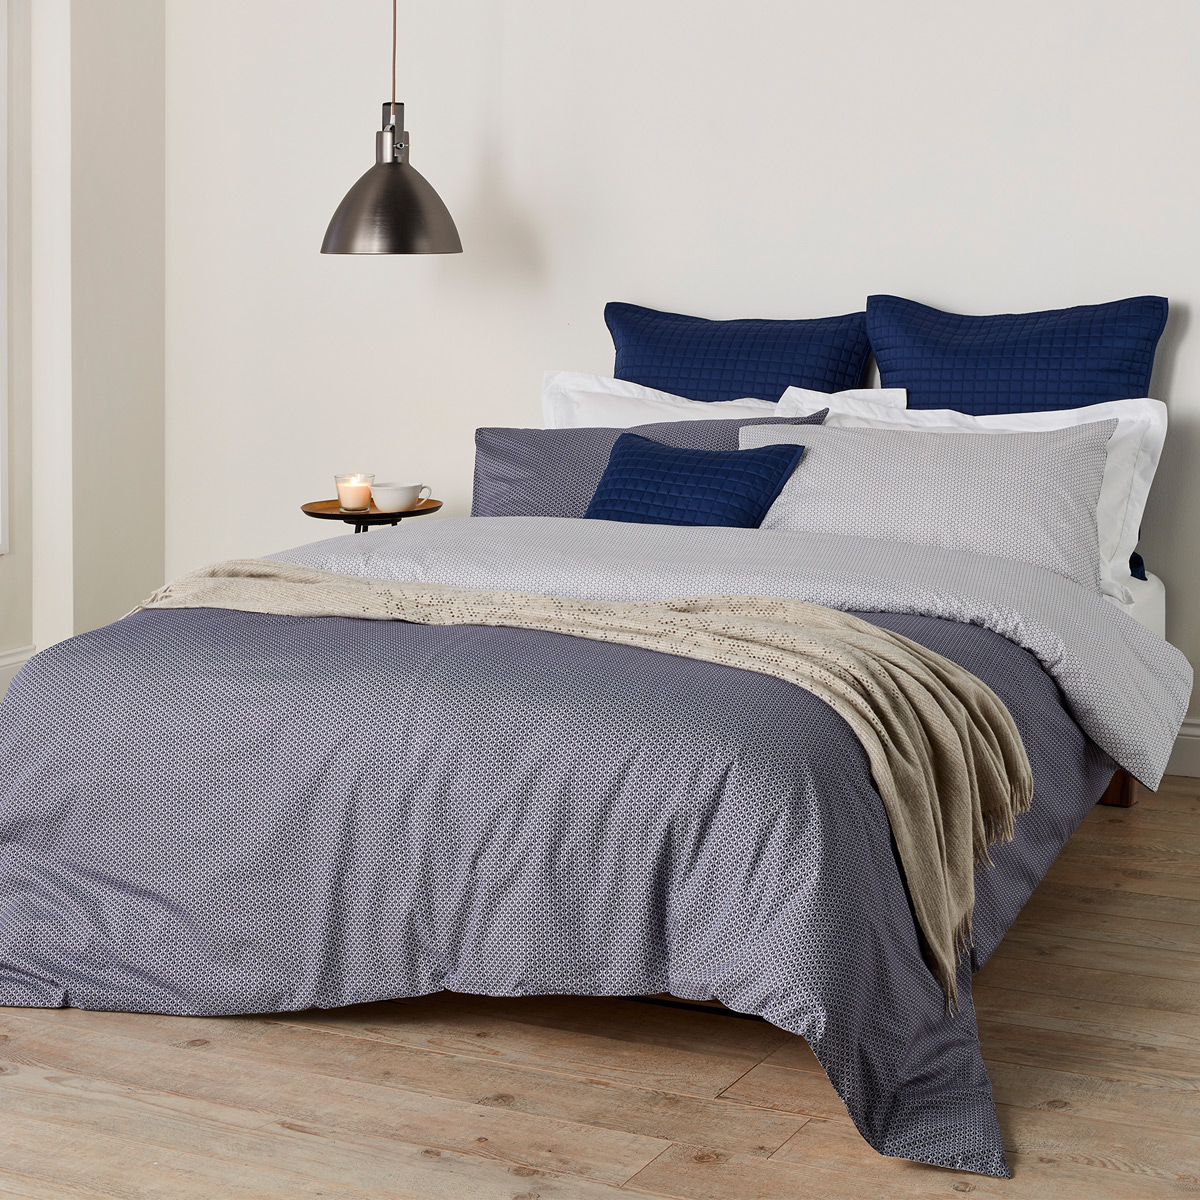 An image of Luxury Cotton Kimono Bed Linen Single Duvet Set in Blue by Christy